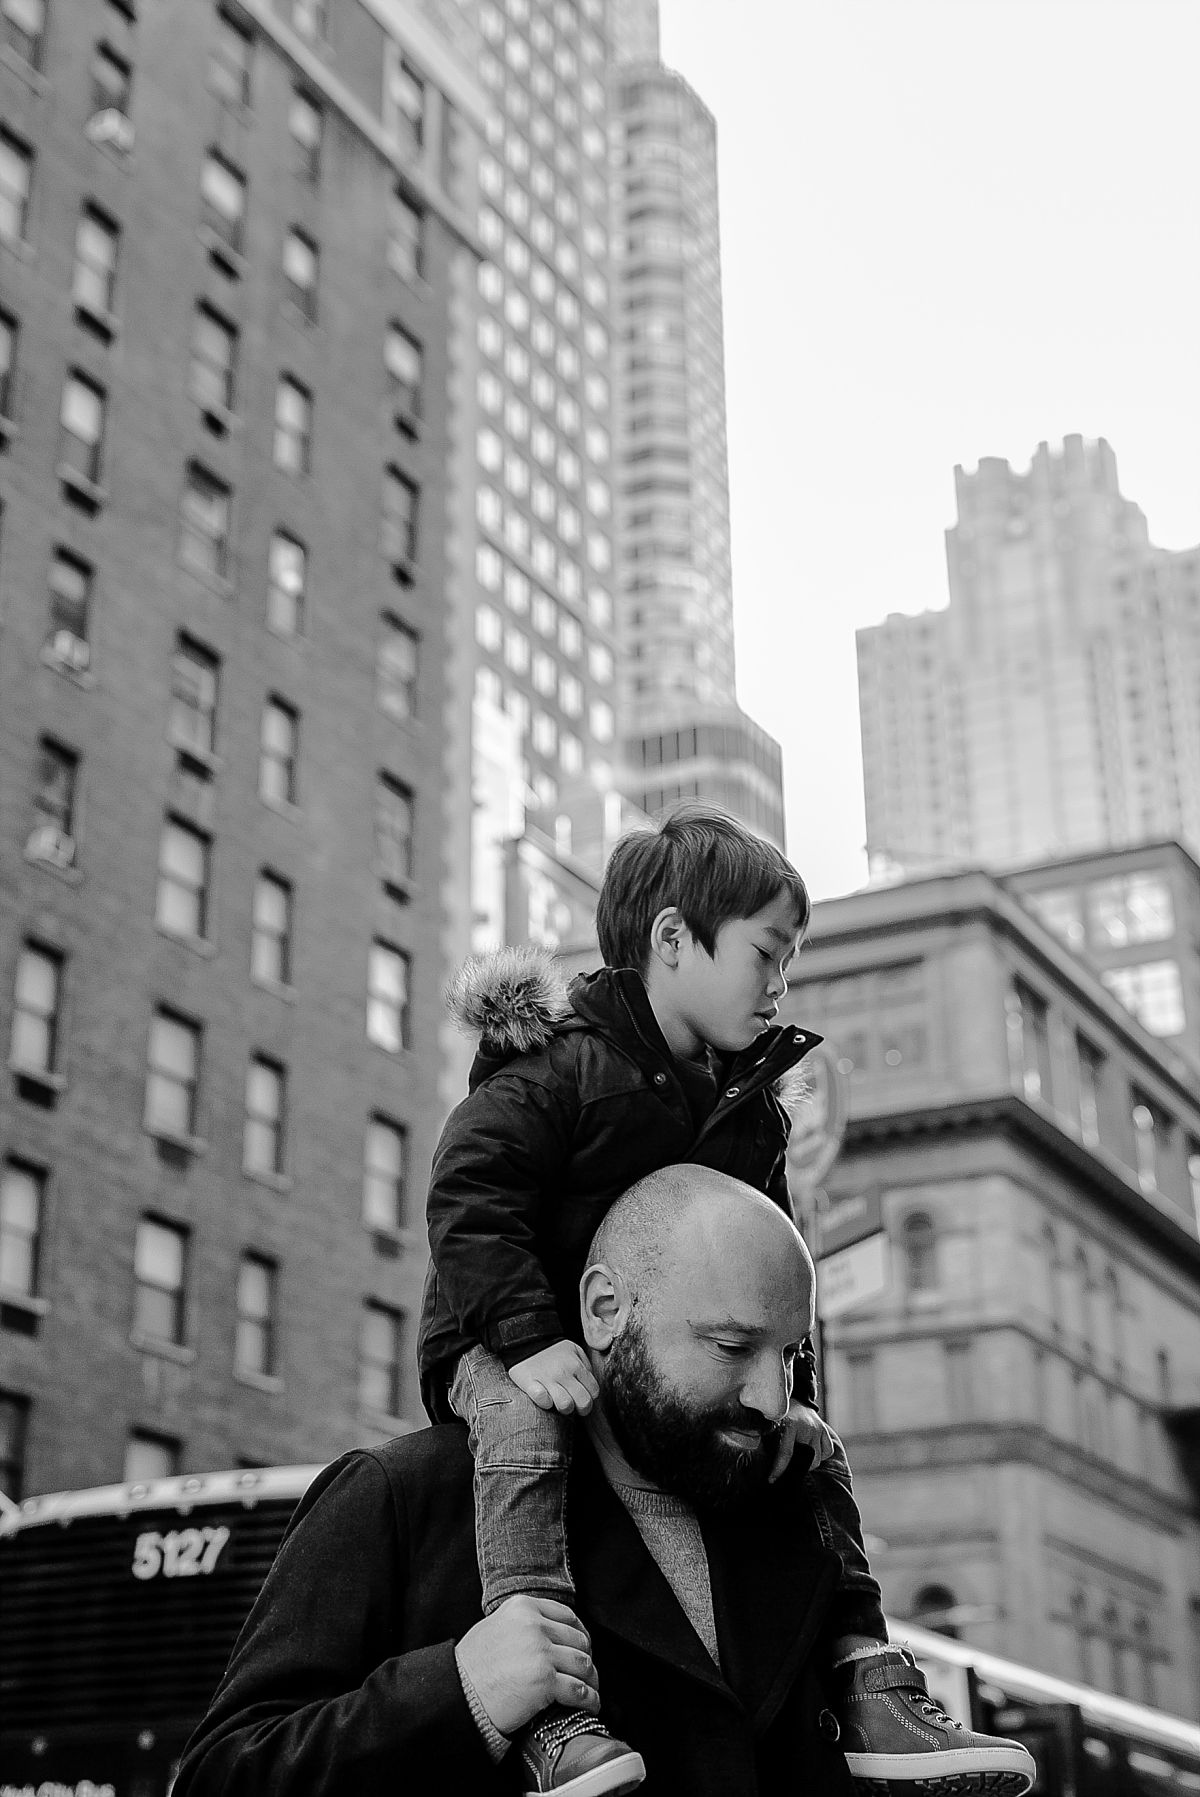 dad gives young son a shoulder ride as he walks through the streets of midtown manhattan. image by nyc family photographer krystil mcdowall